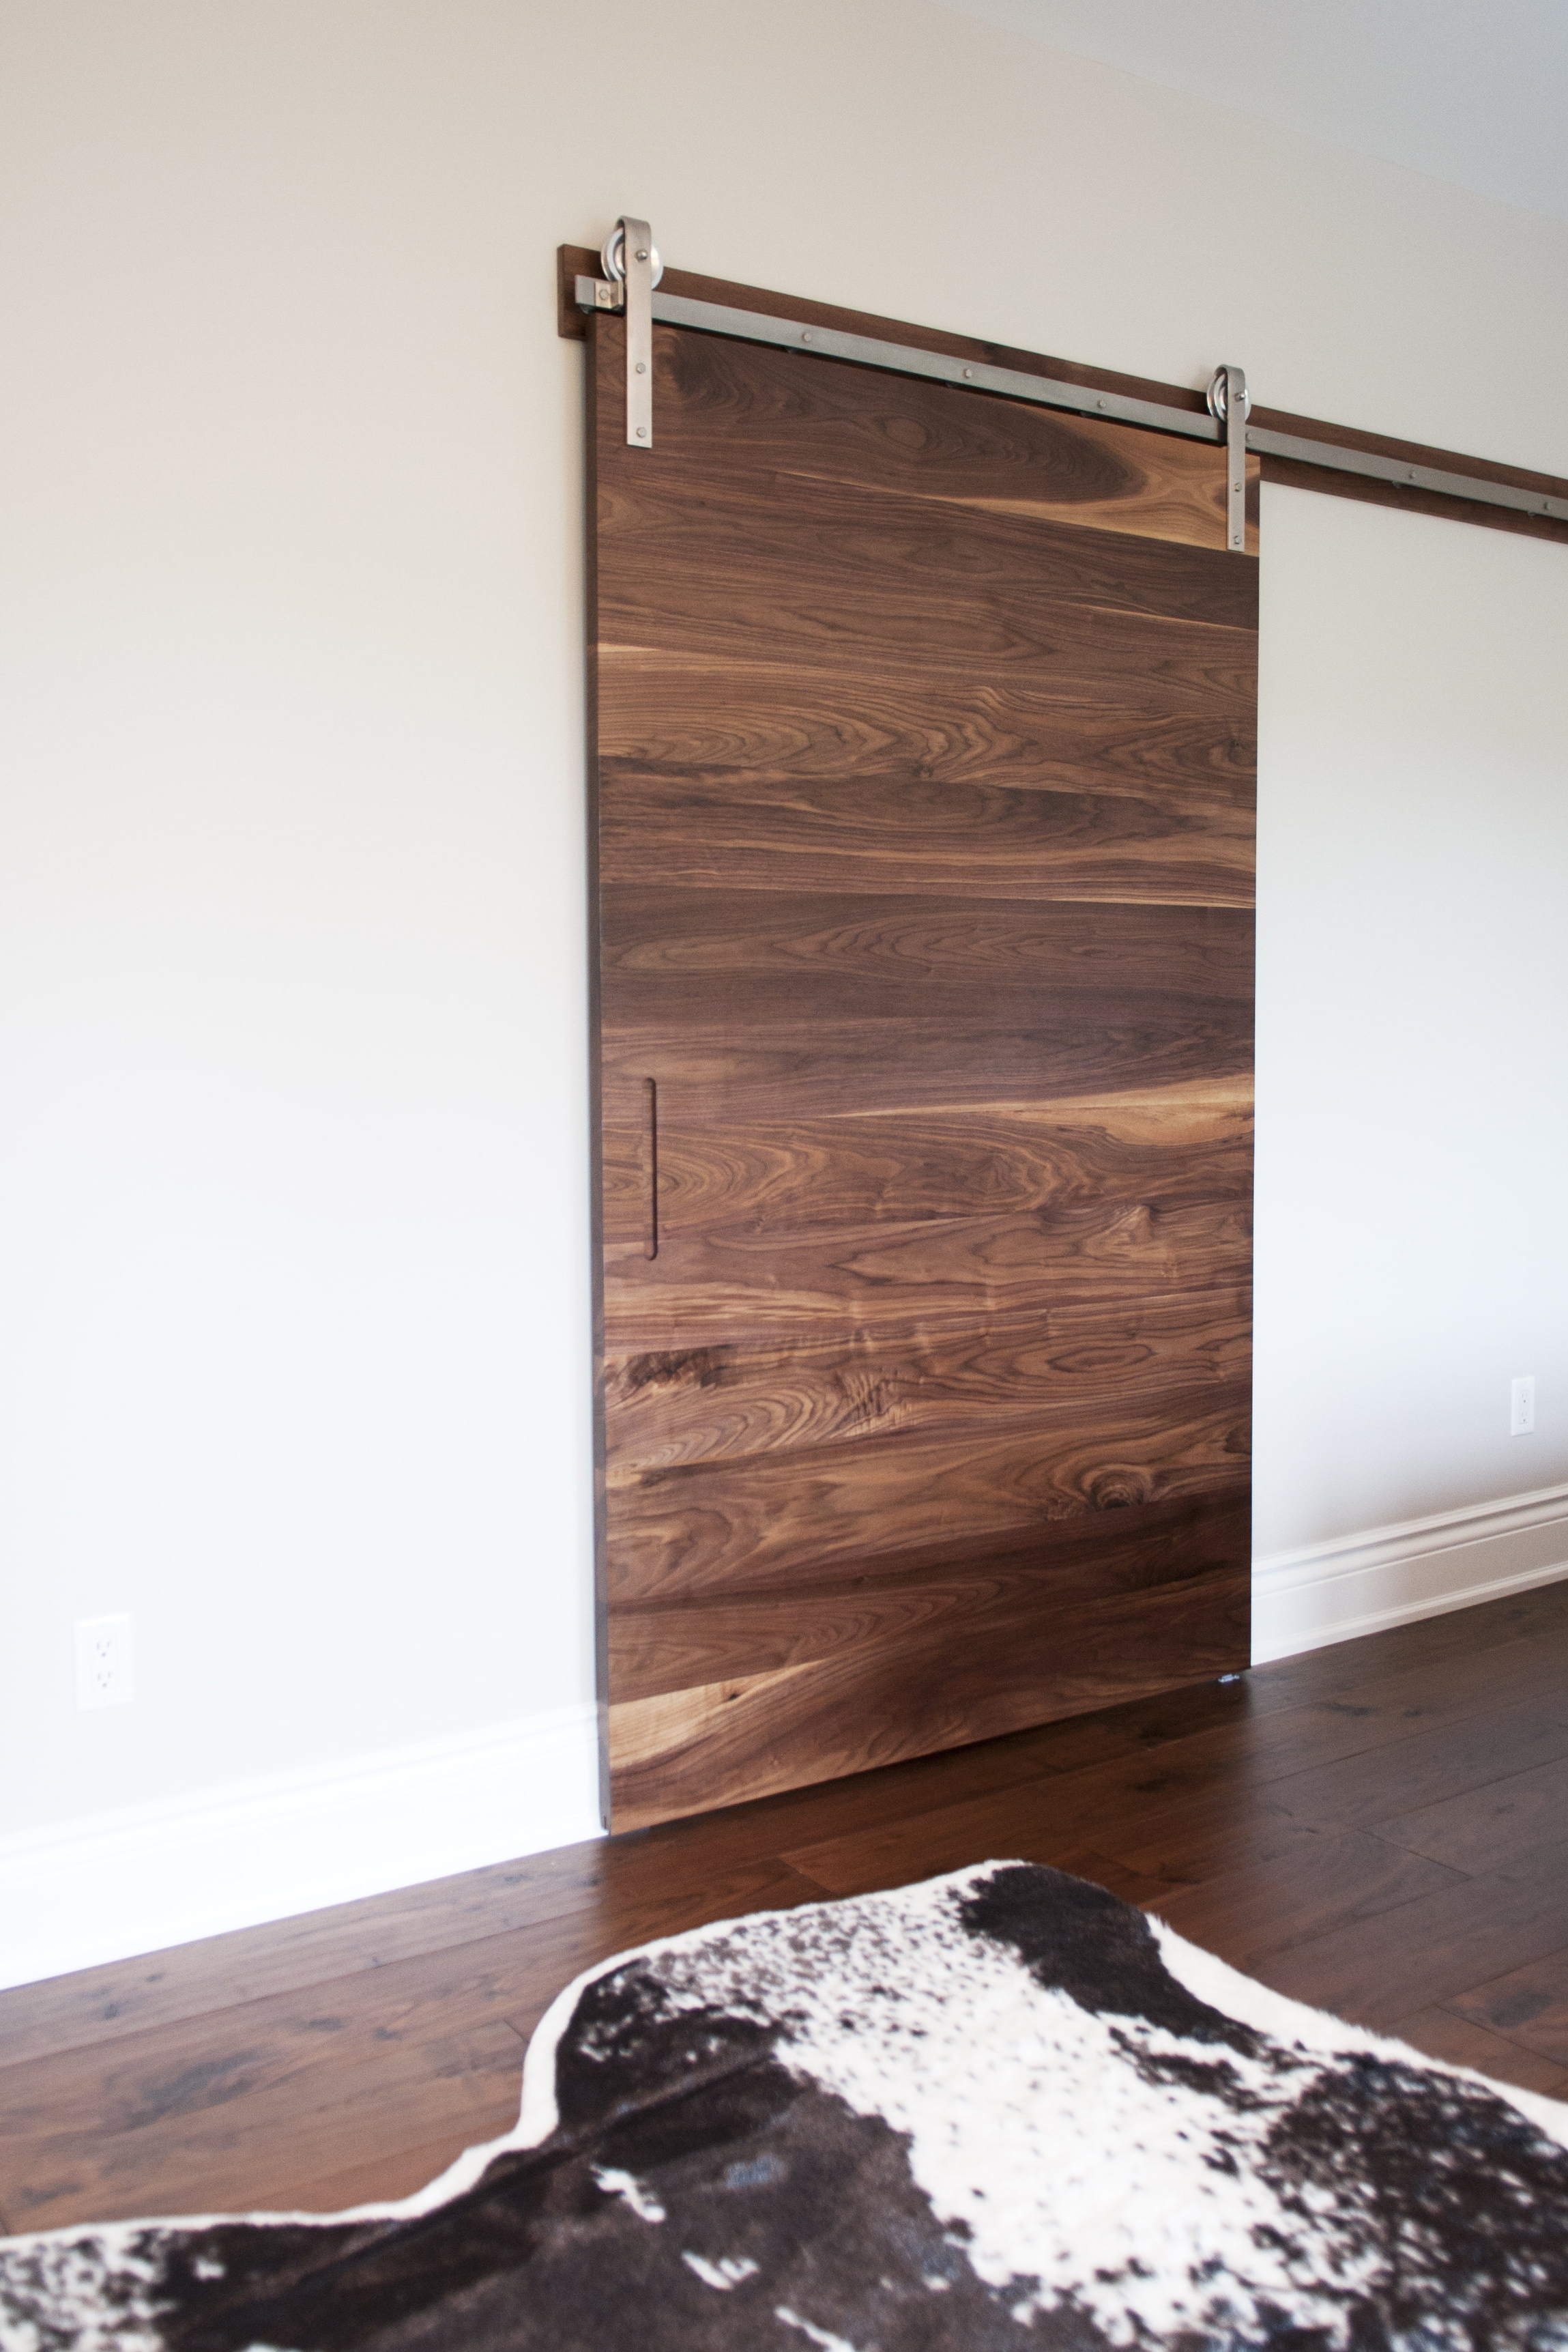 walnut_slab_door_stainless_steel_2016_03.jpg